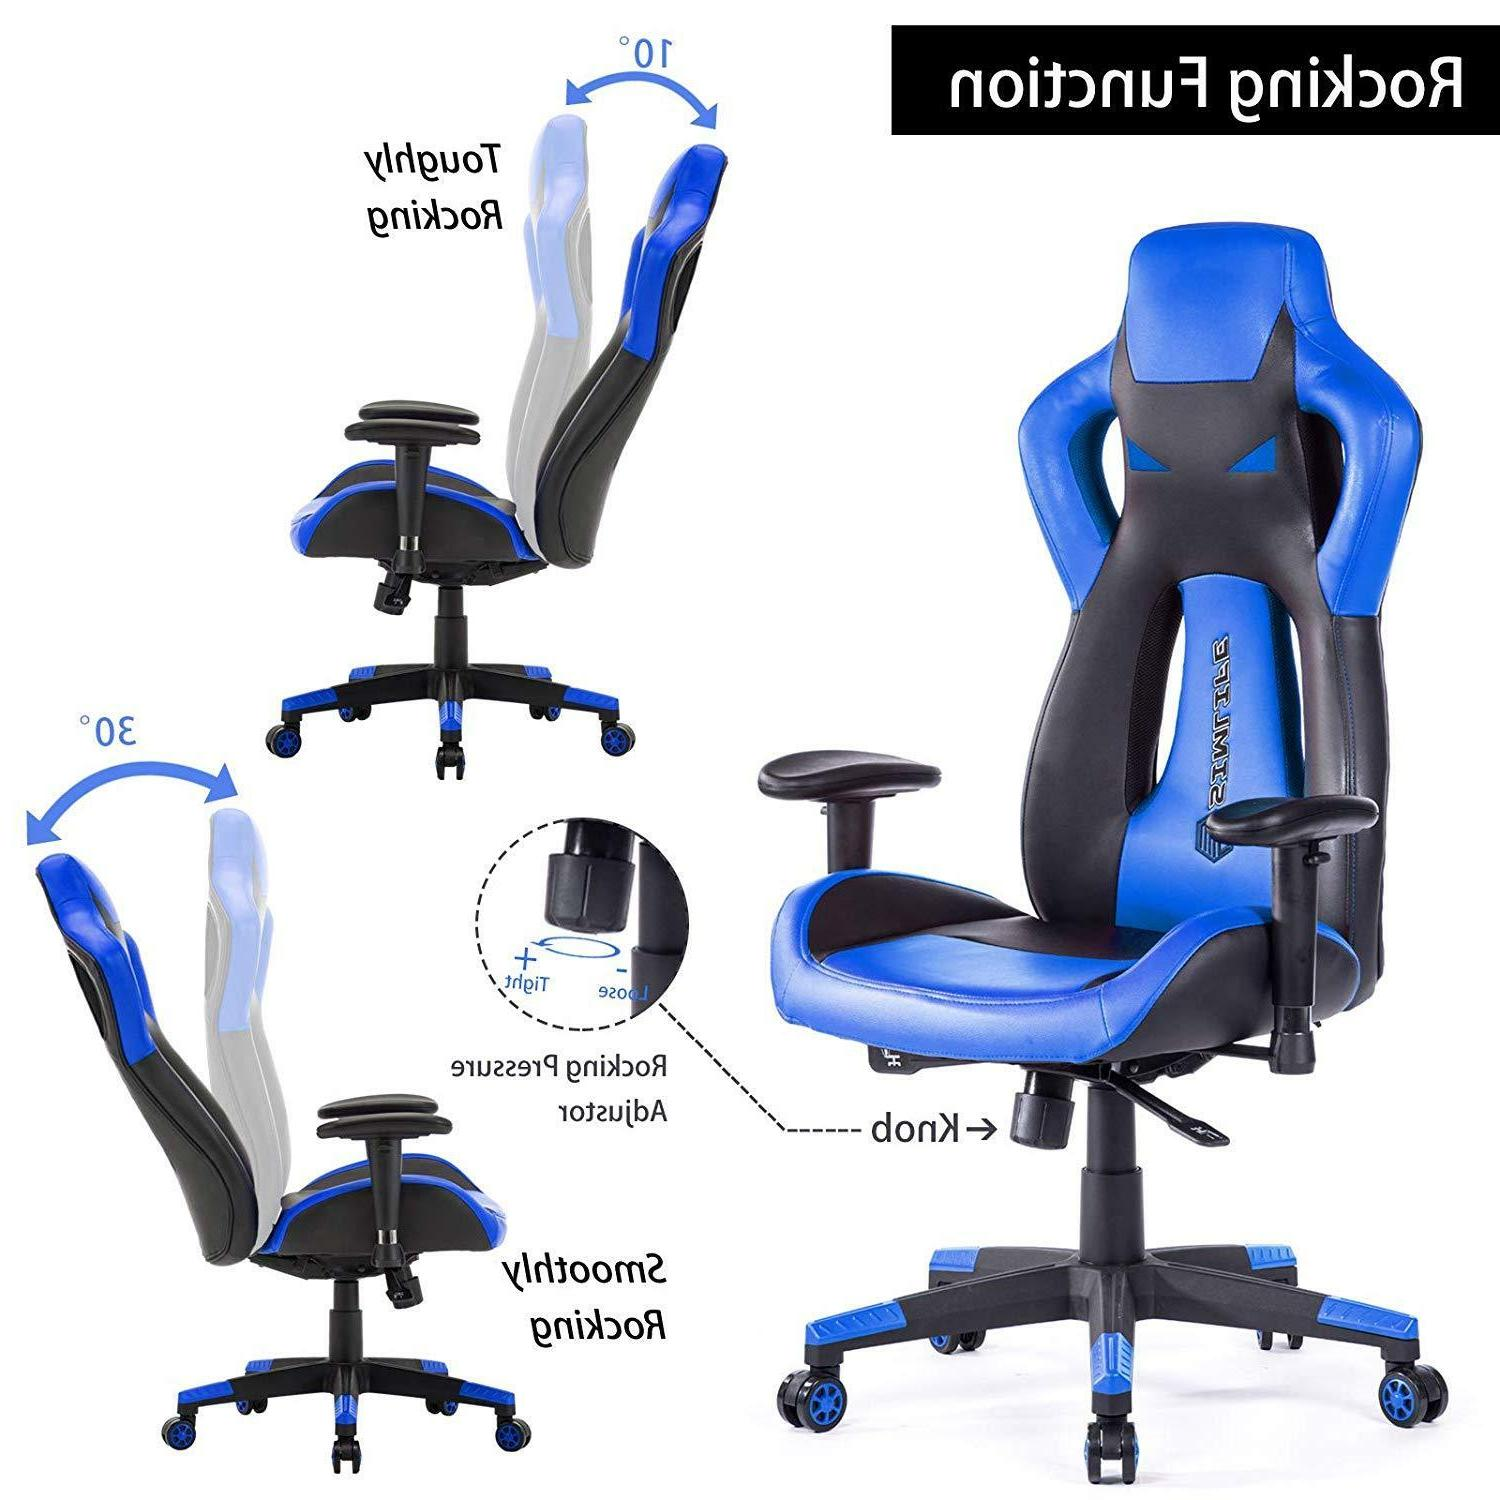 High Back Racing Car Style Office Gaming Chair or L-Shape Desk